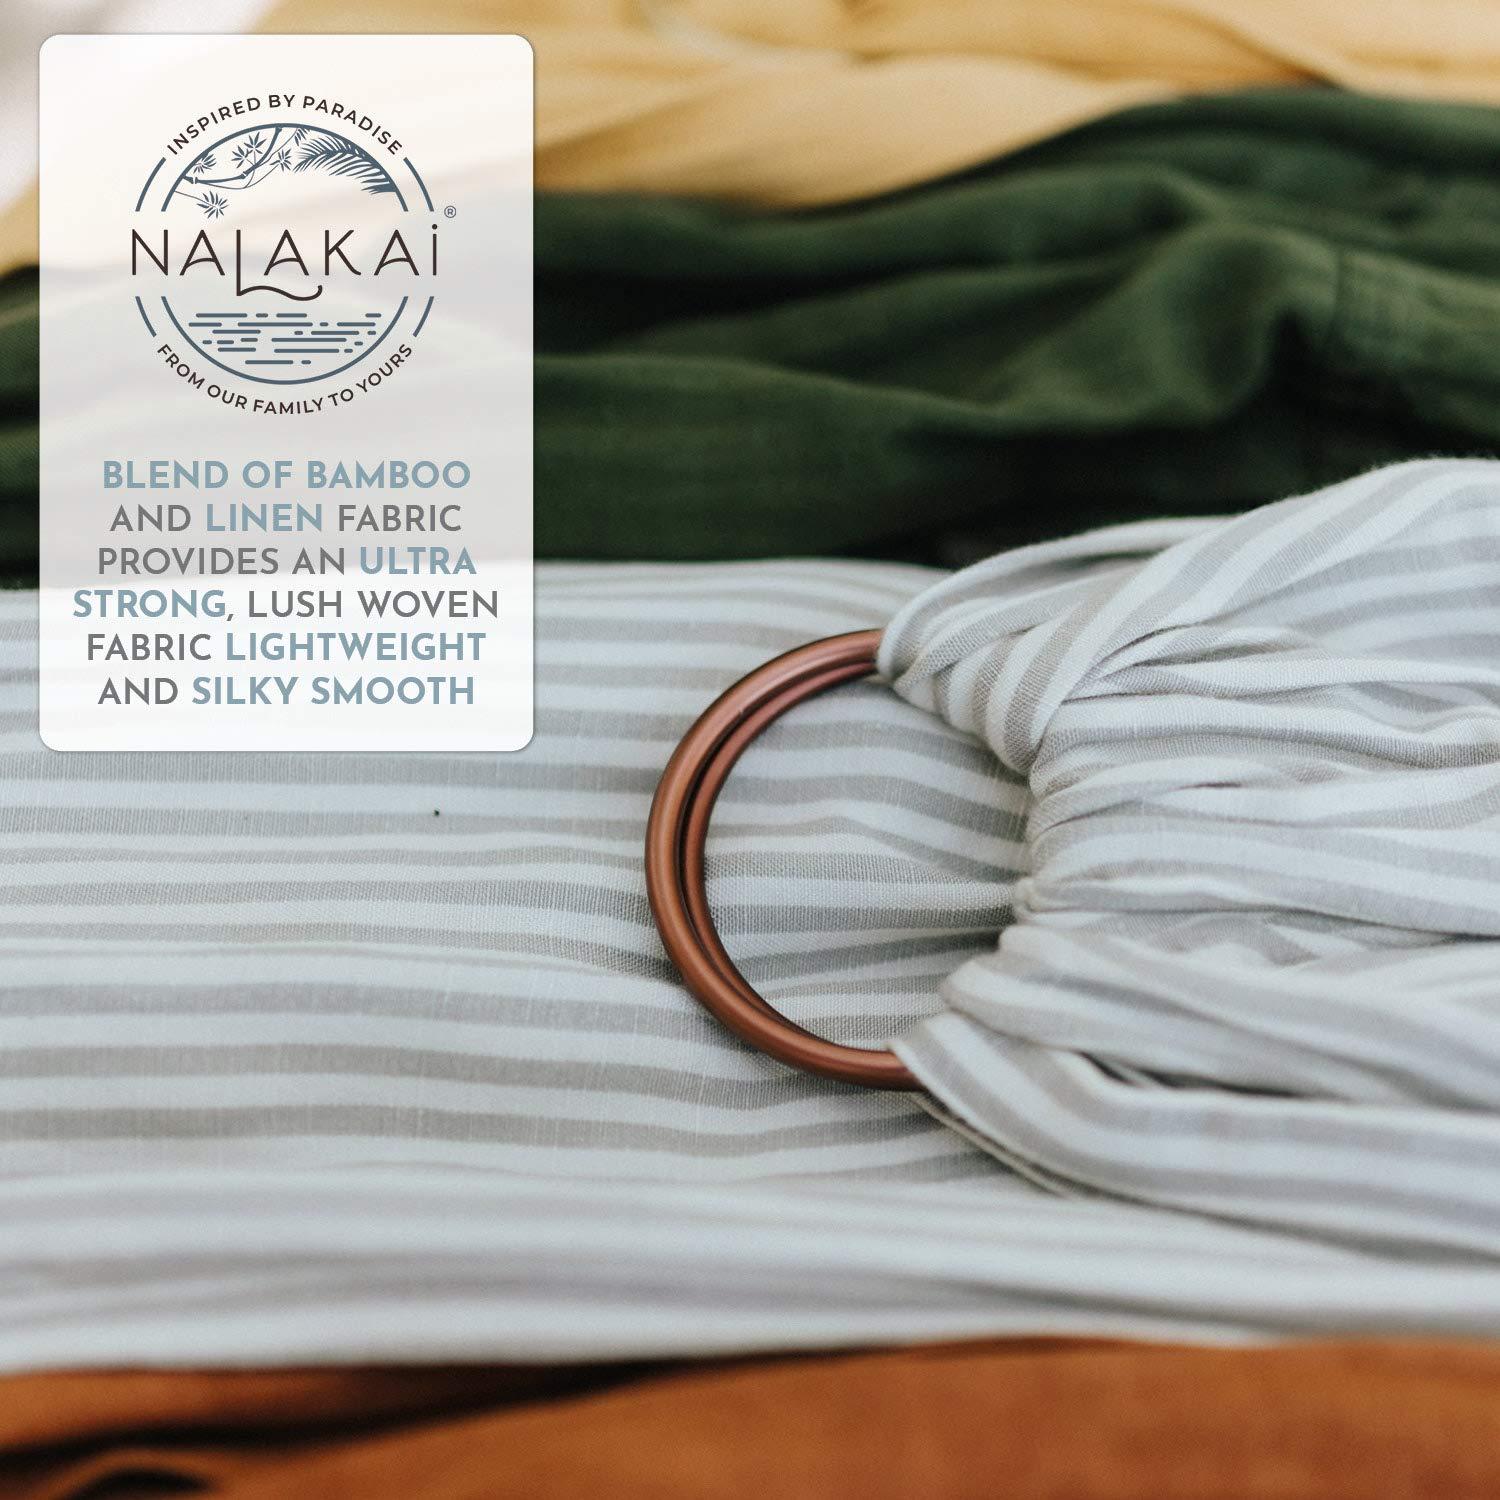 Nalakai Luxury Ring Sling Baby Carrier Nursing Cover Extra-Soft Bamboo and Linen Fabric Black Perfect Baby Shower Gift Lightweight Plus Size Infant Carrier Also for Newborns and Toddlers